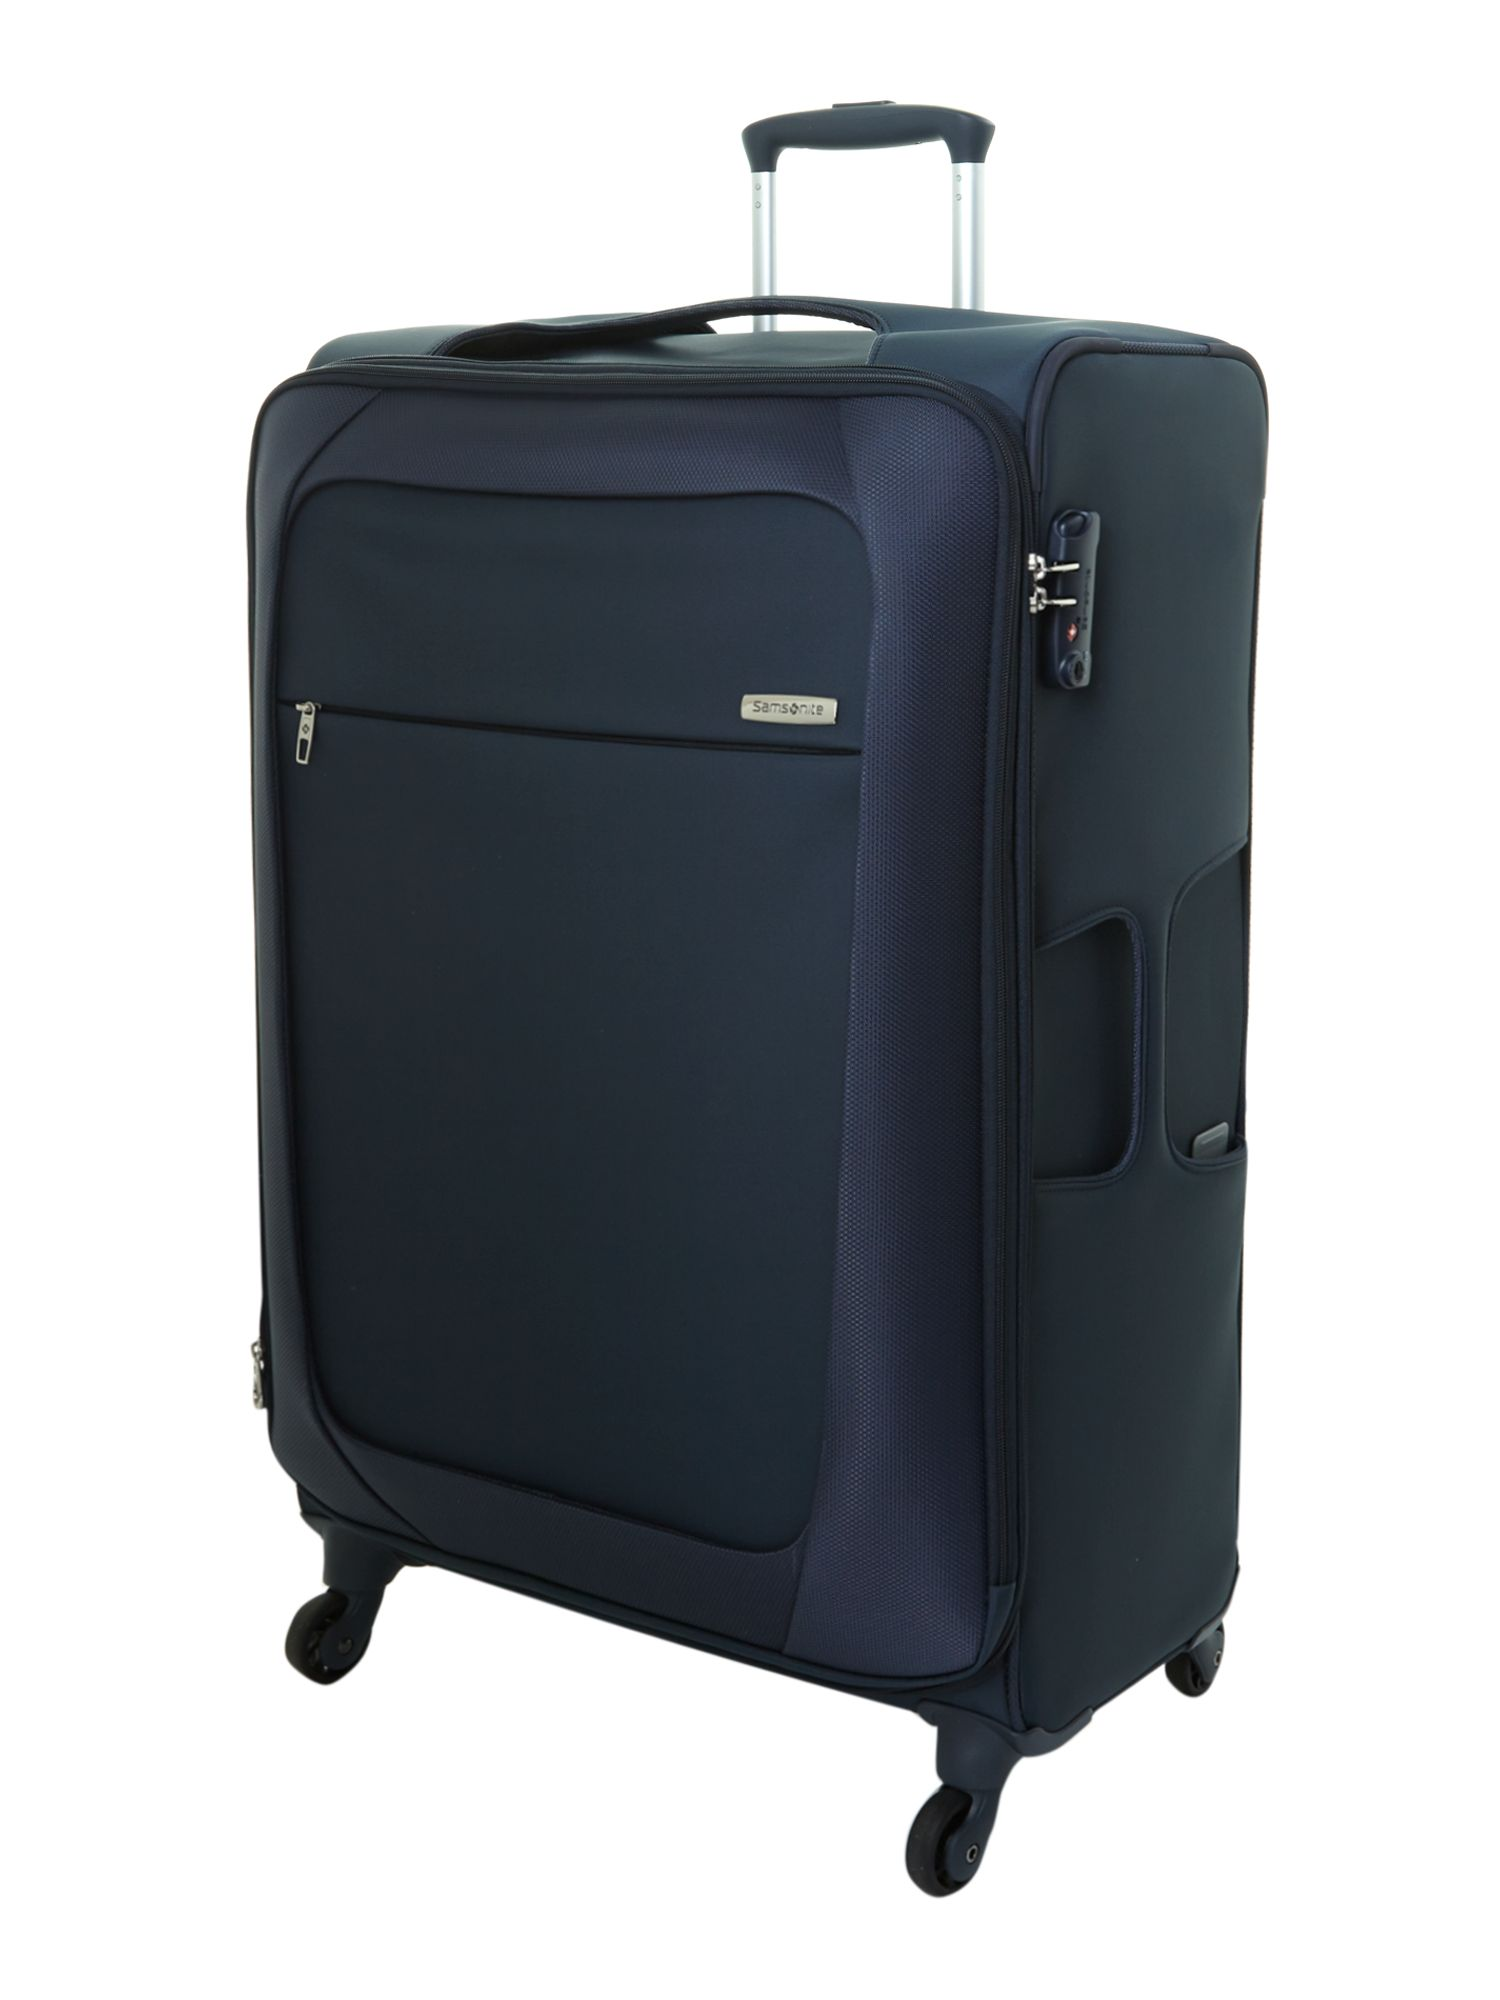 Shop direct from Samsonite for the most durable & innovative luggage, business cases, backpacks and travel accessories. Free Shipping Samsonite.